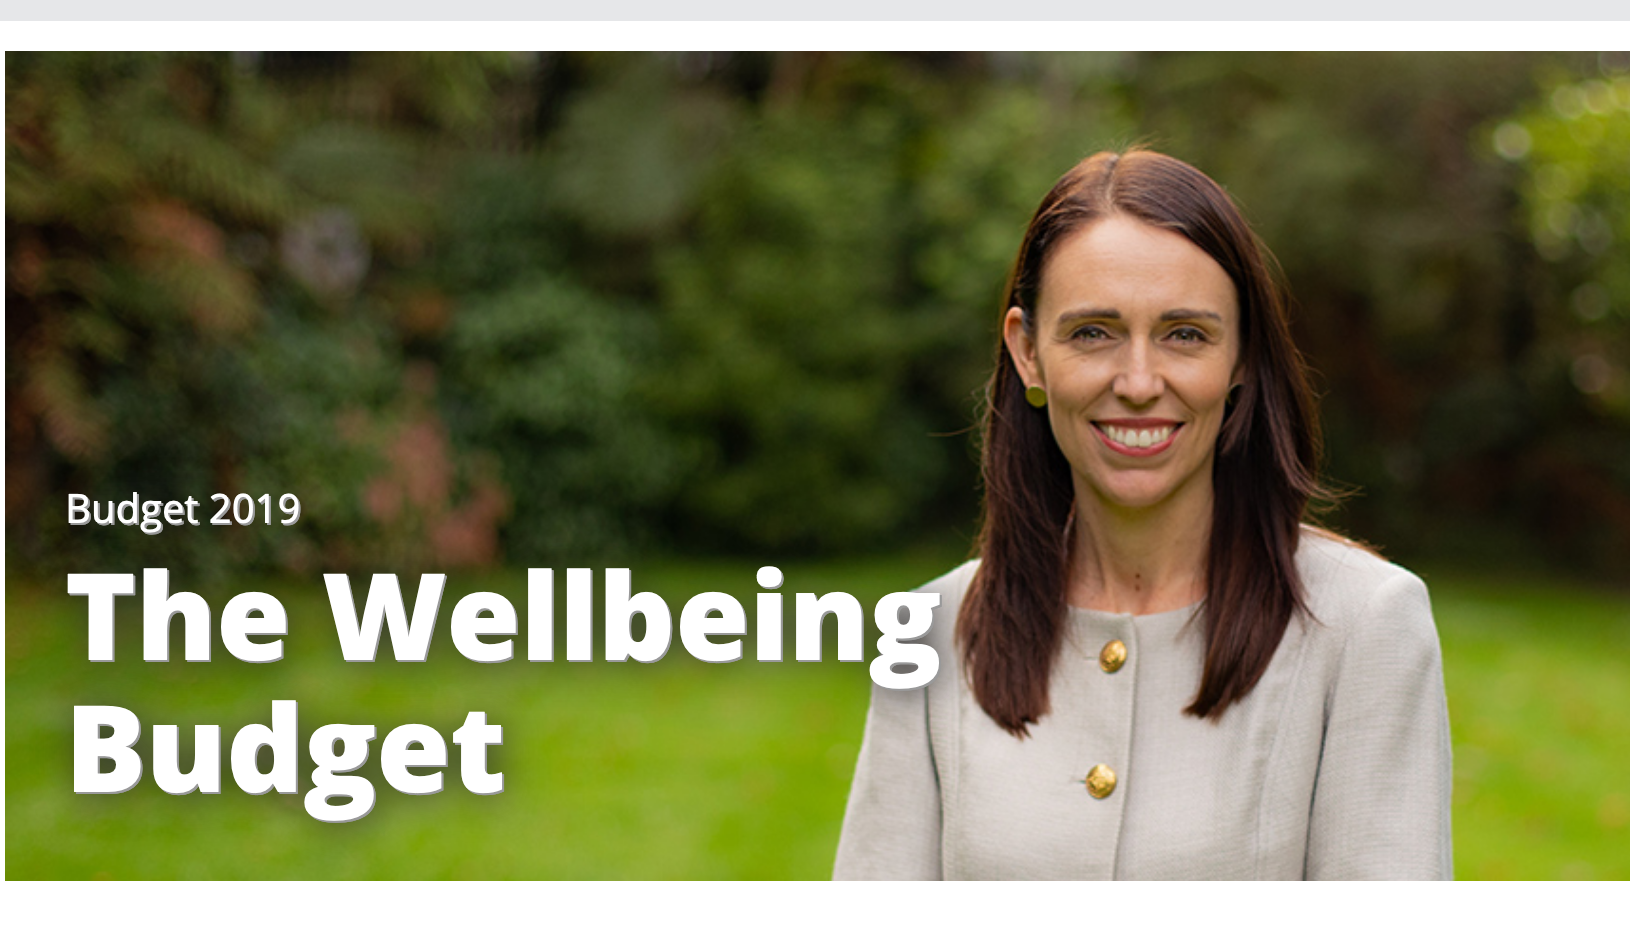 The Wellbeing Budget: What difference might it make?